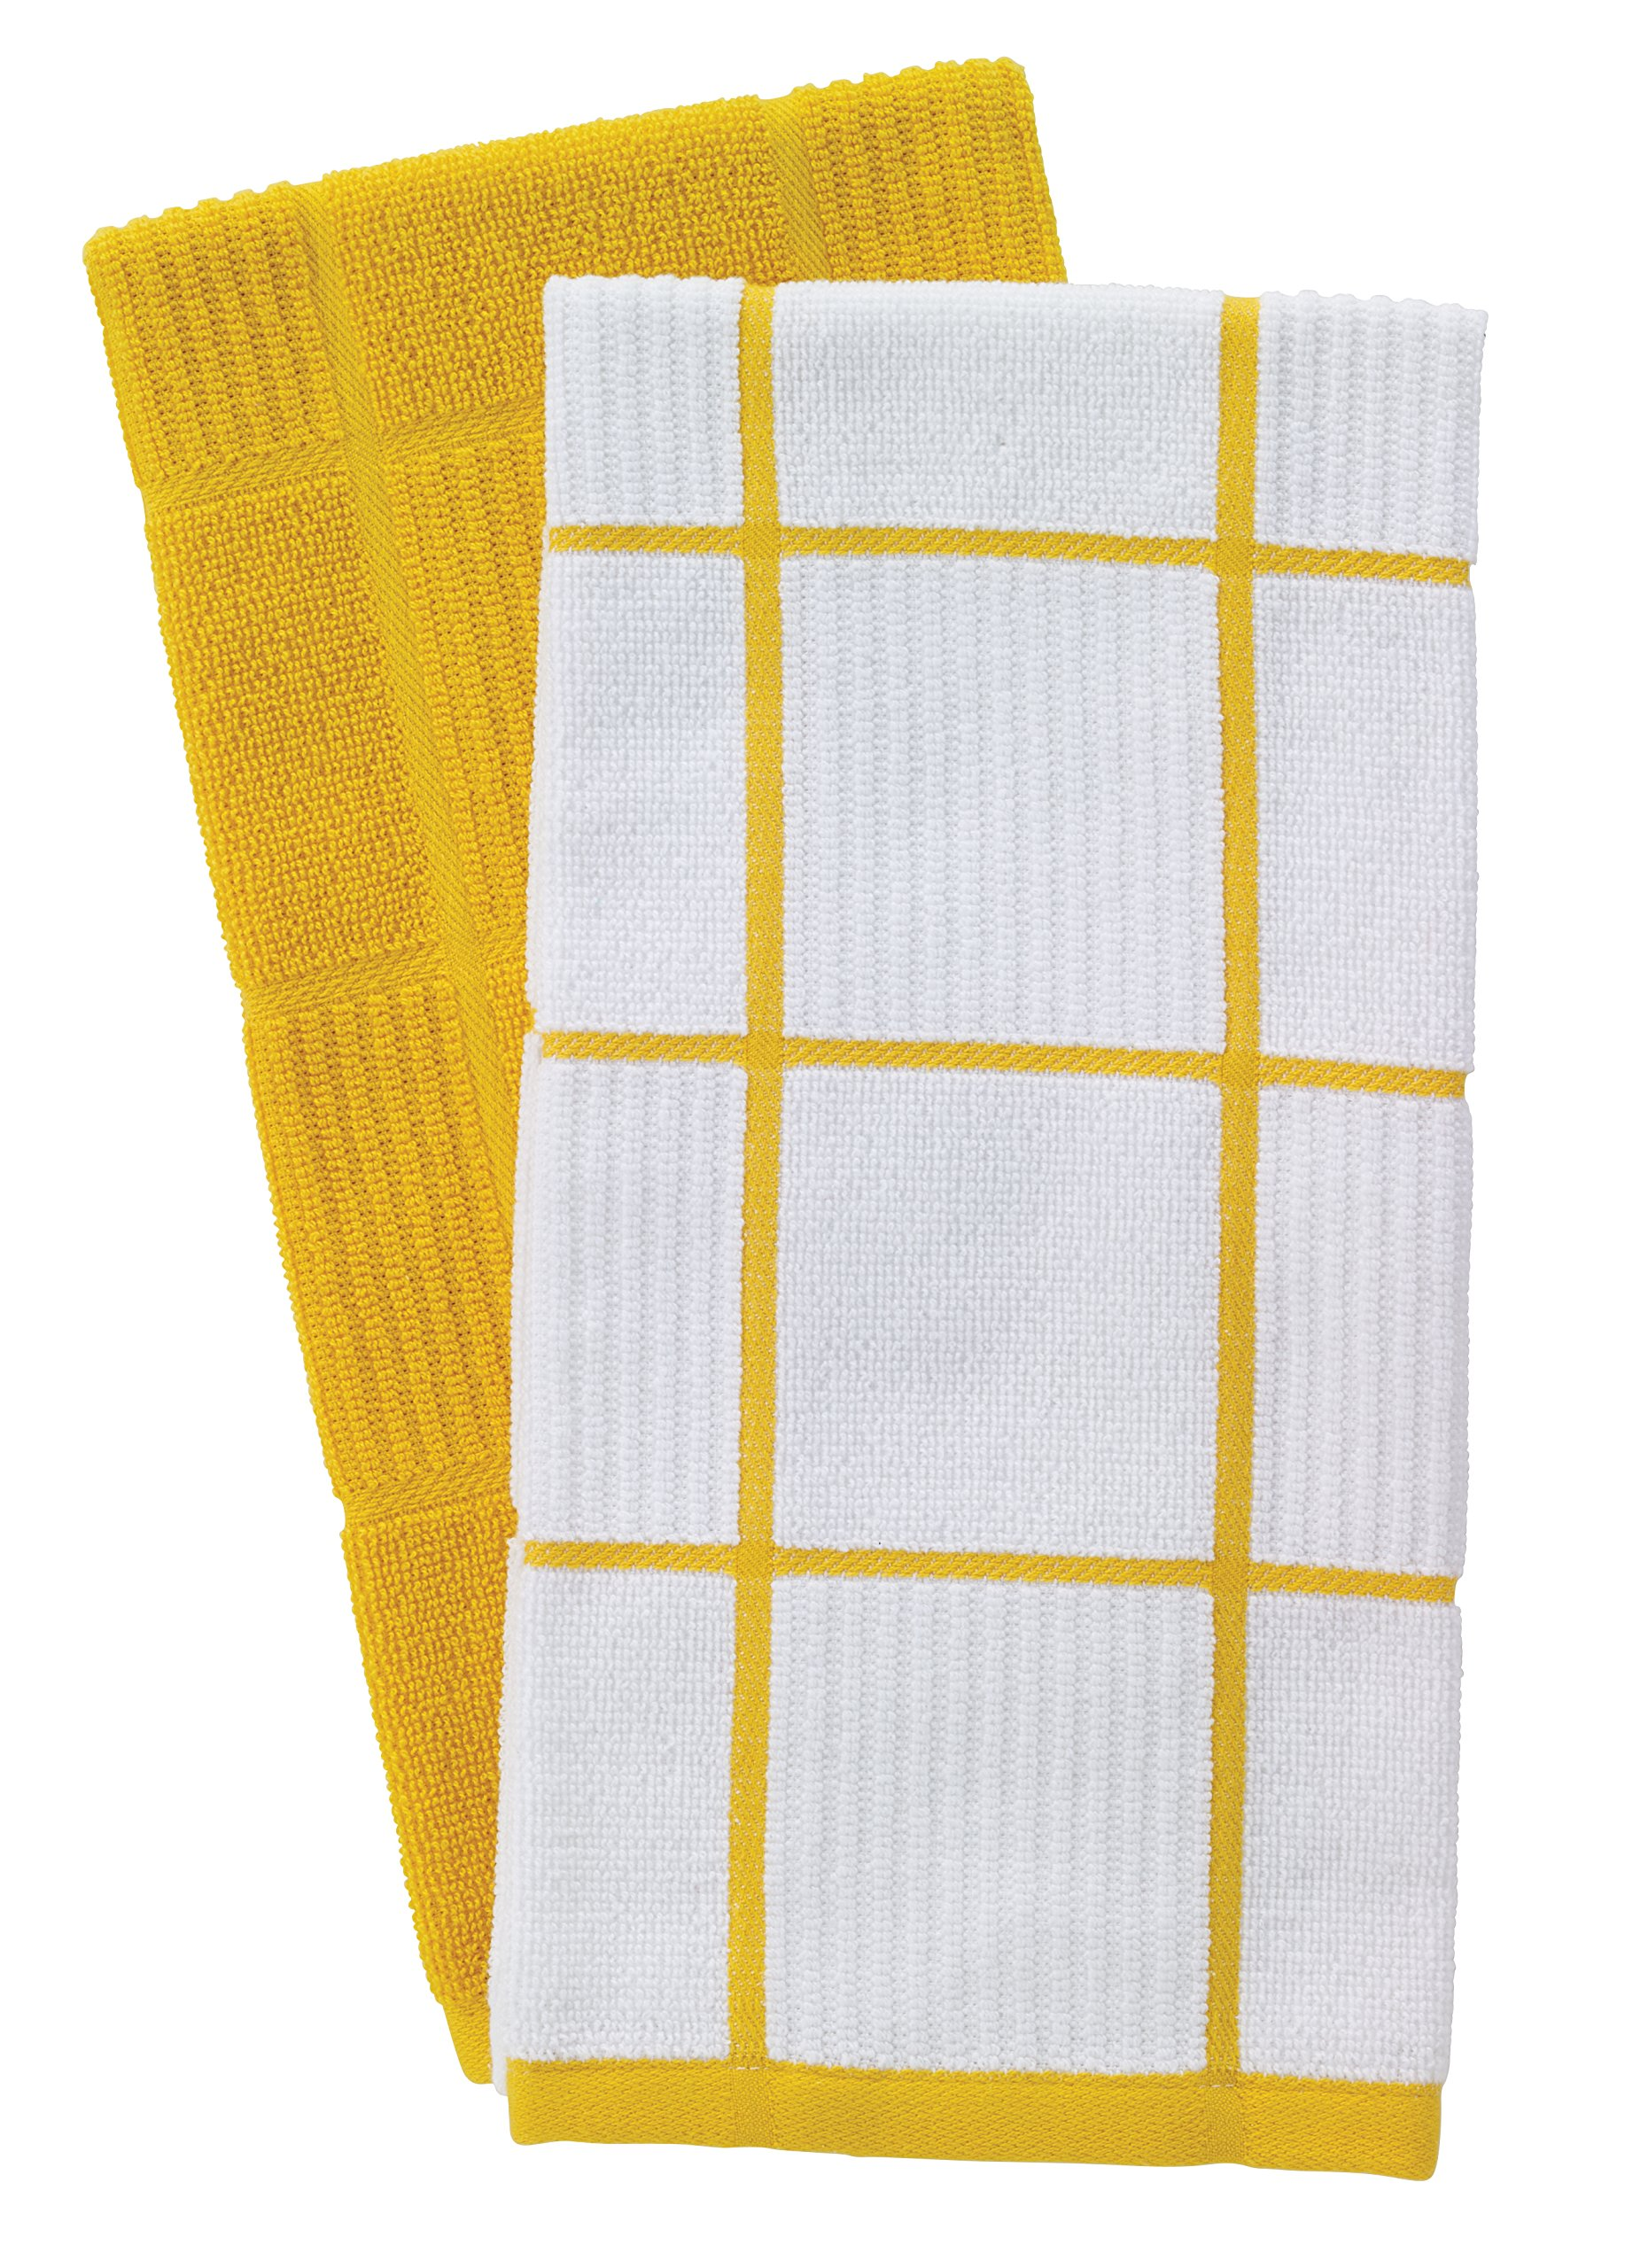 T-Fal Textiles Woven Solid & Checked Parquet Design, Highly Absorbent 100% Cotton Kitchen Dish Towel, 16-inch by 26-inch, Set of 2, Lemon